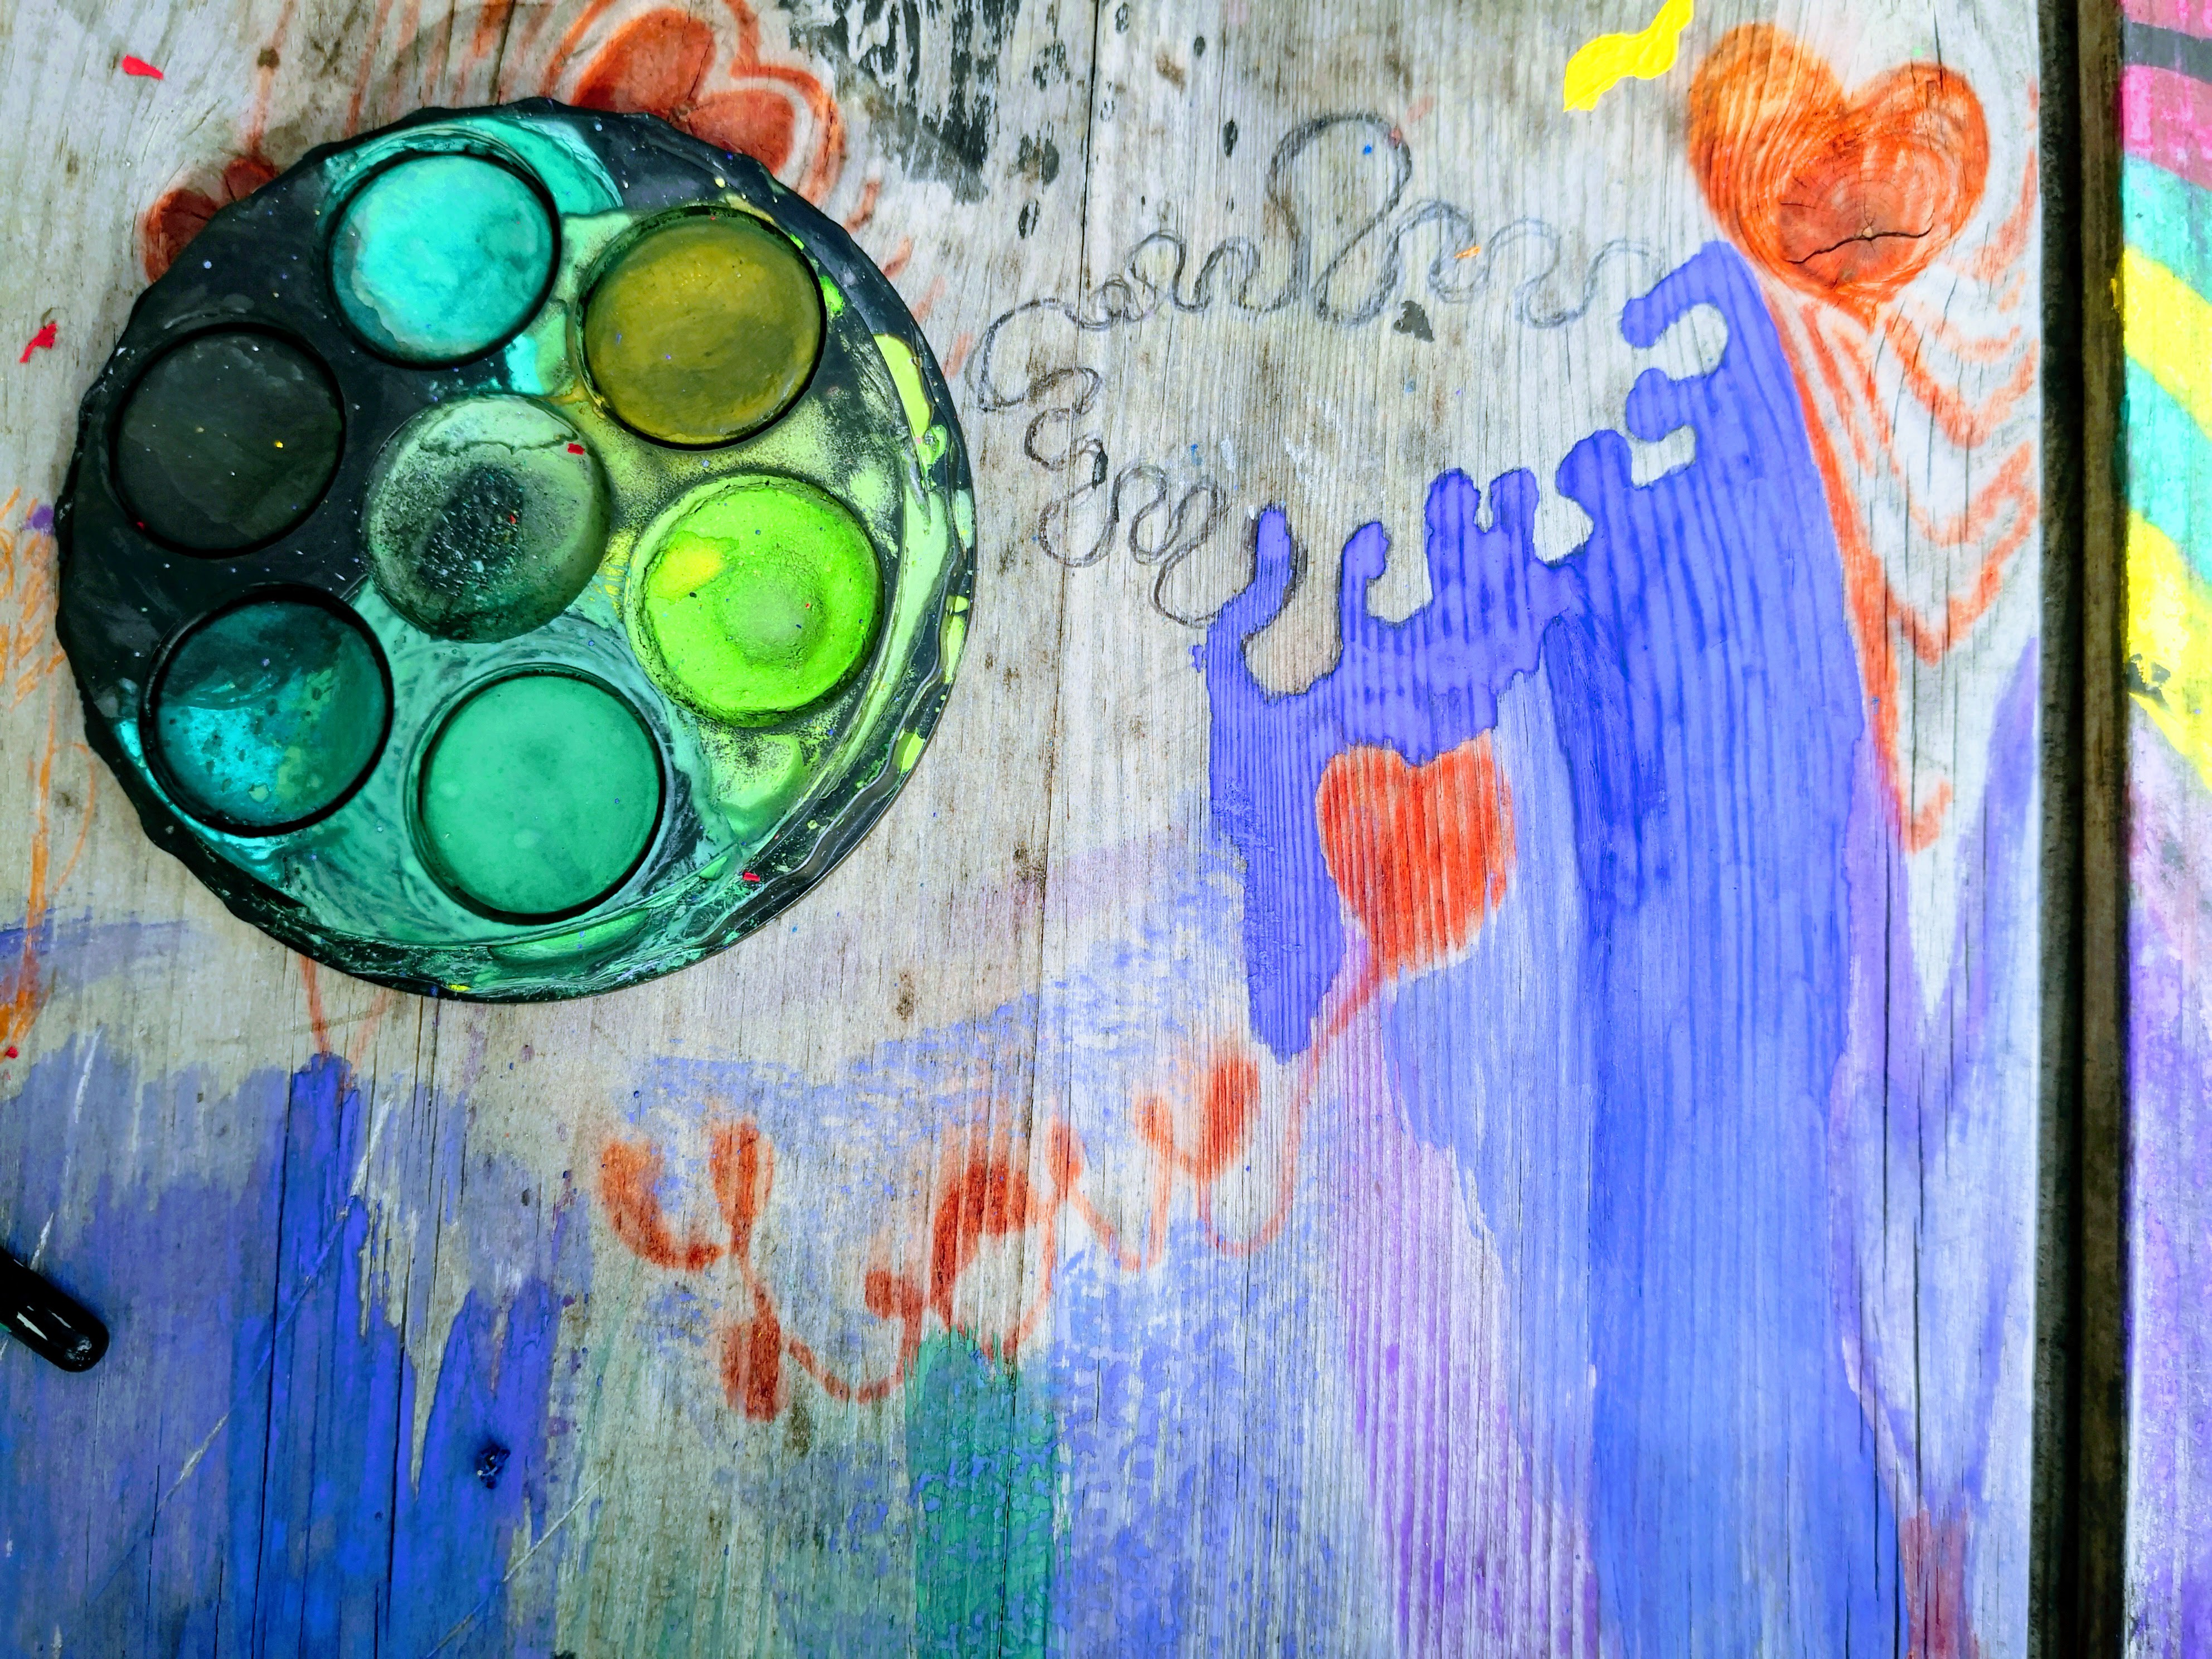 Paint pallet on wooden table covered with colourful paintings and doodles